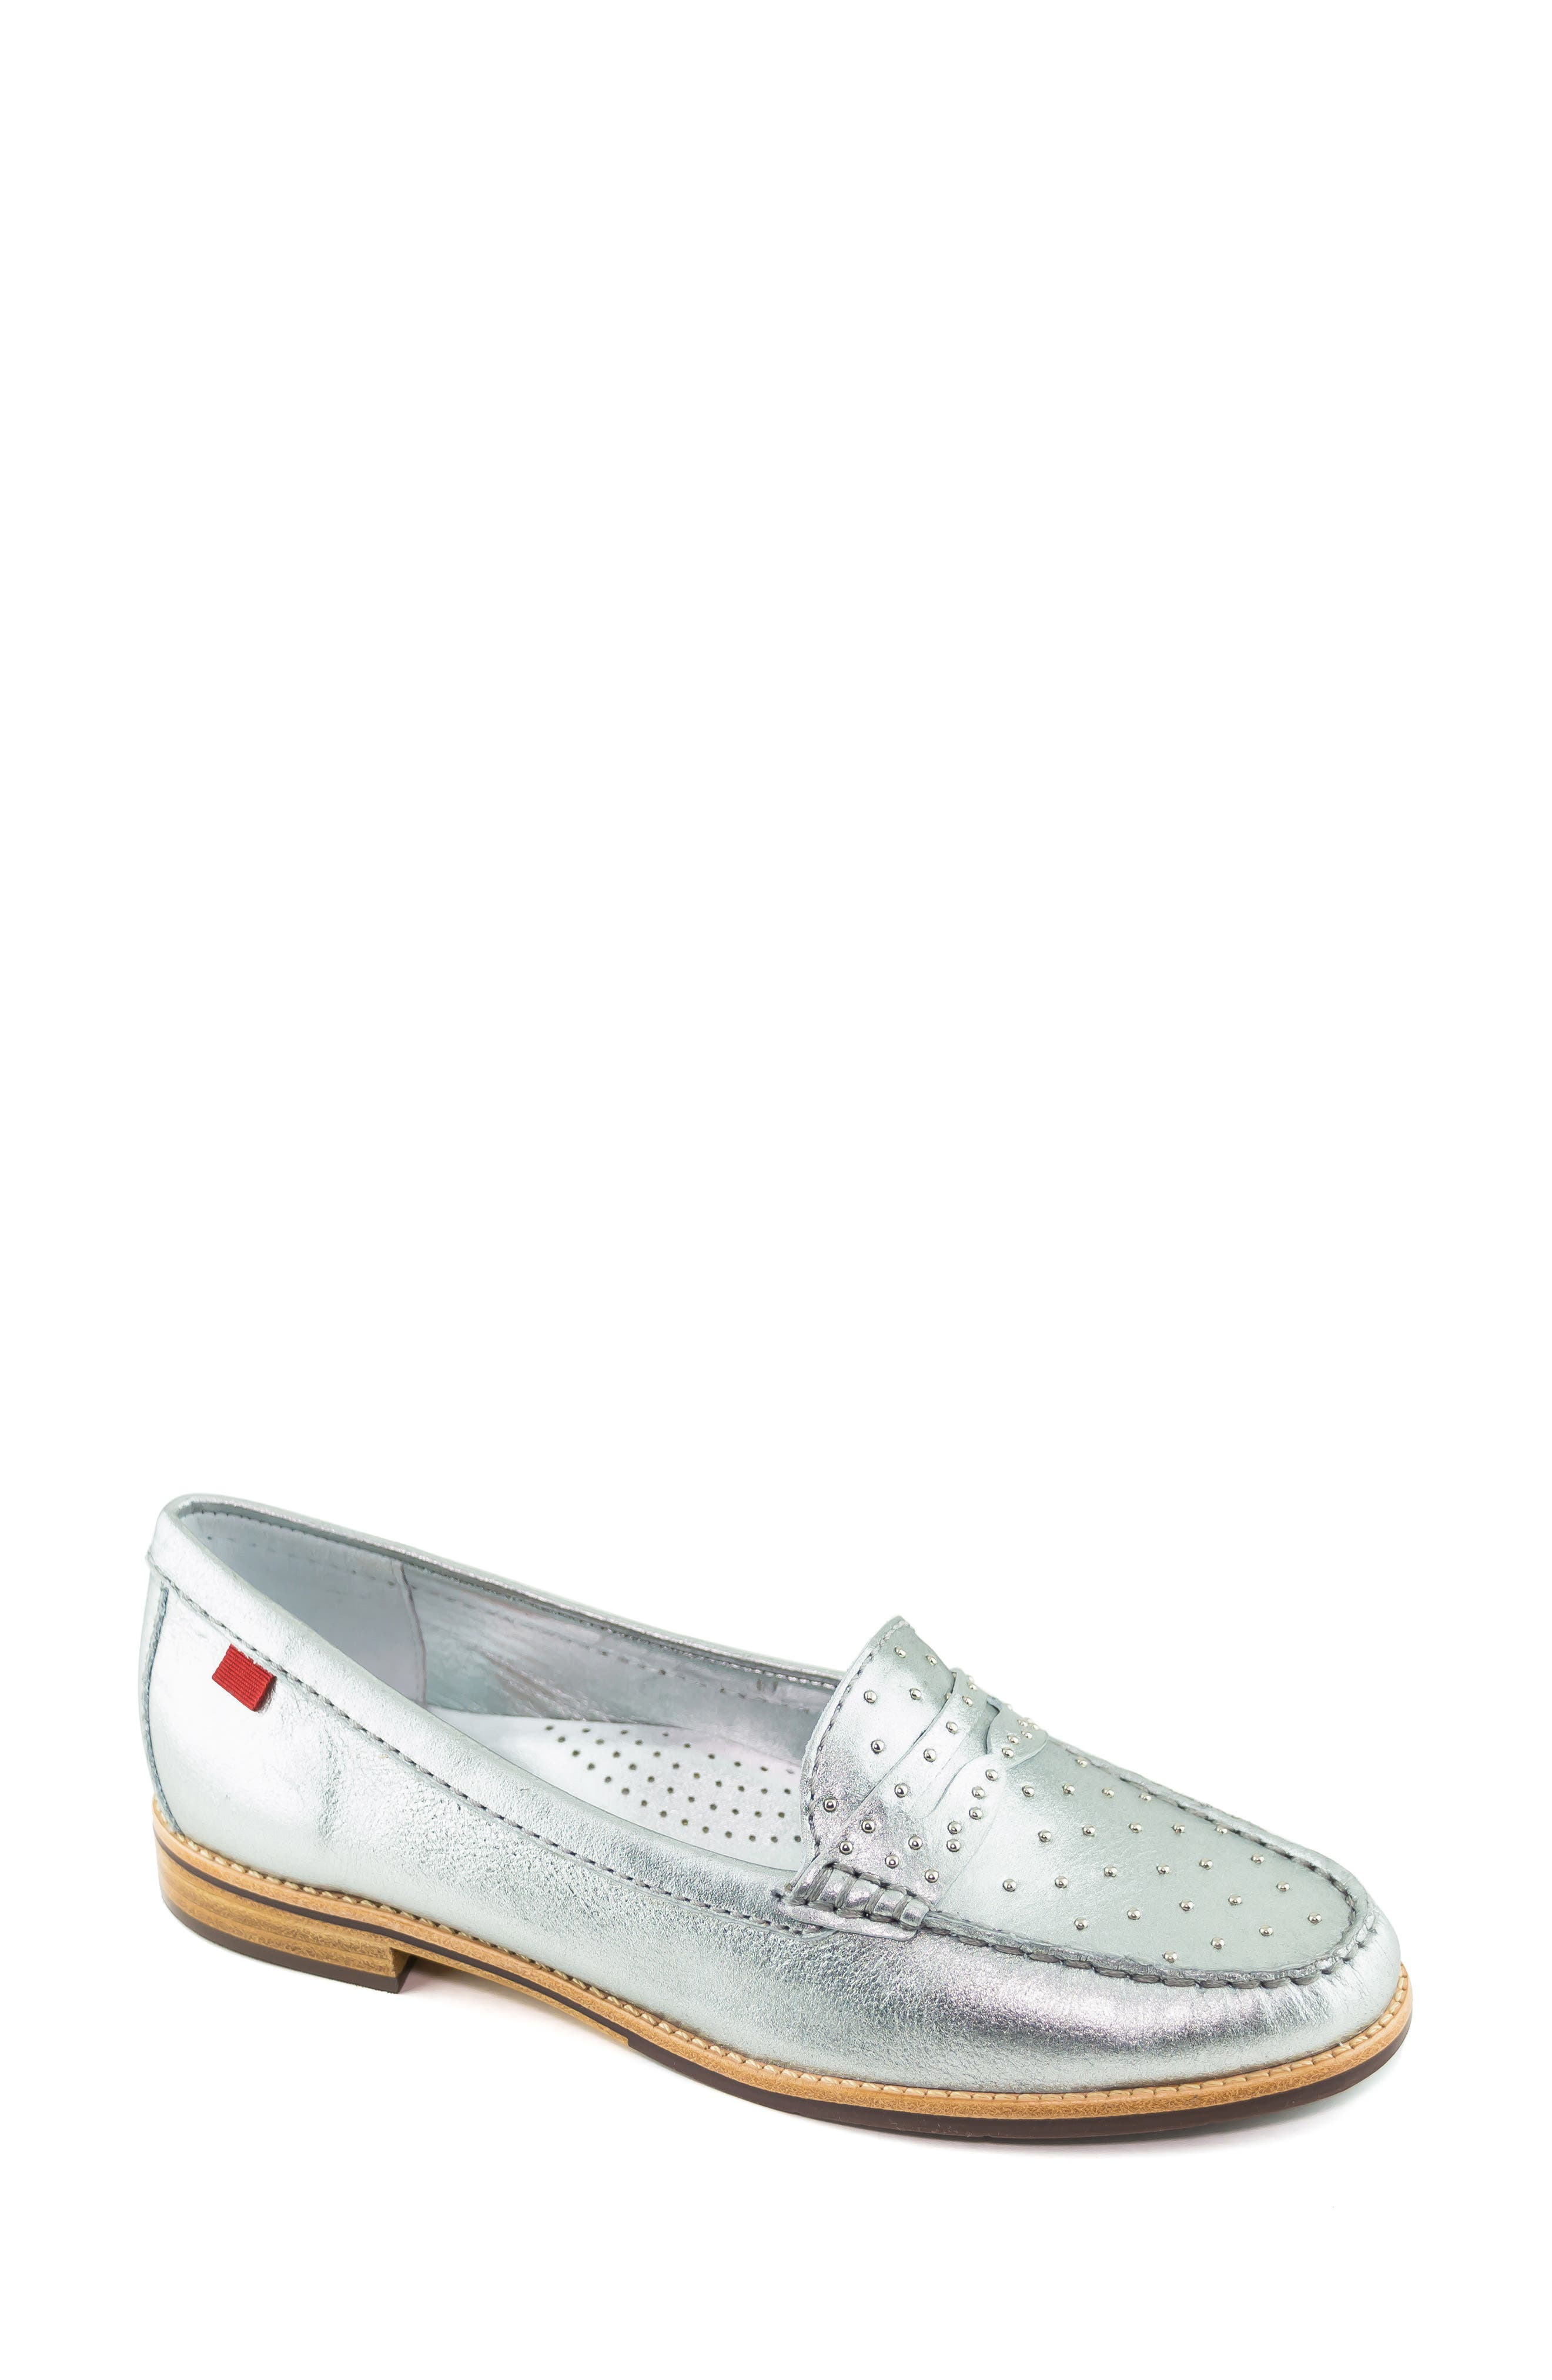 MARC JOSEPH NEW YORK, East Village III Studded Loafer, Main thumbnail 1, color, SILVER LEATHER